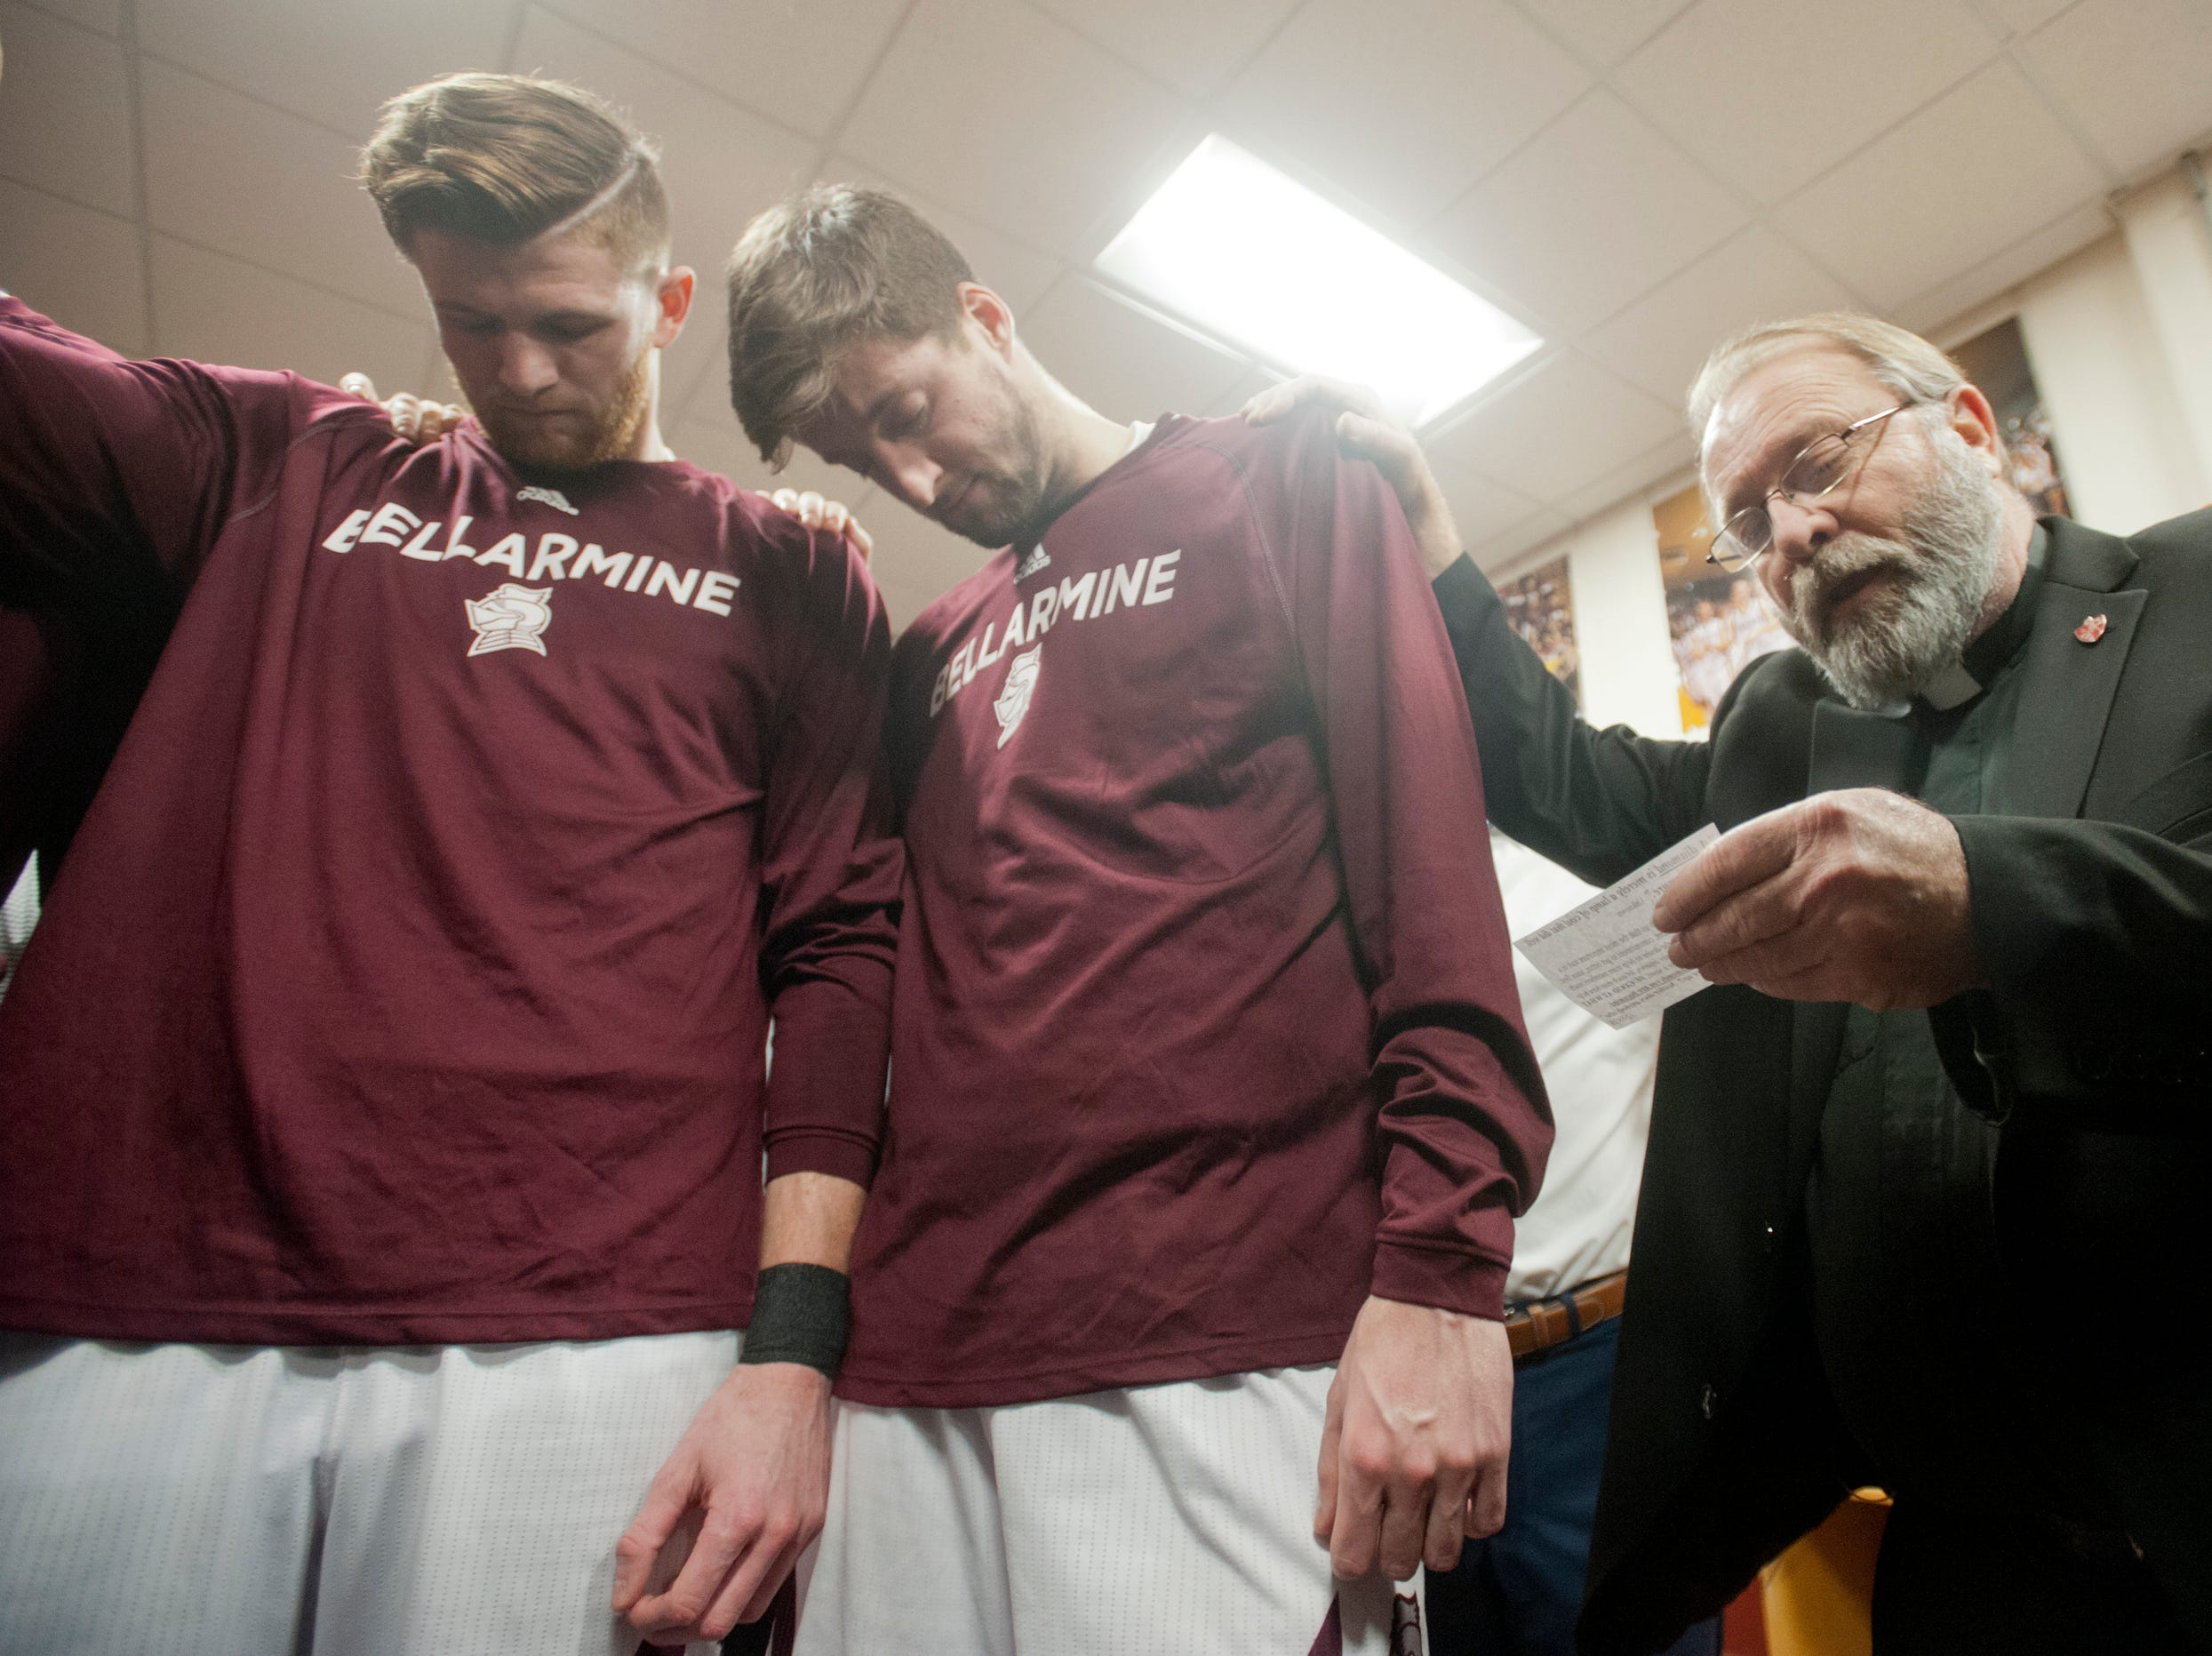 At the end of the final pre-game meeting, Father Dale Cieslik, chaplain for the Bellarmine Basketball team for the past 14 years, says a prayer with the team. At left are Bellarmine forward Ben Weyer and Bellarmine forward Ethan Claycomb .18 December 2018